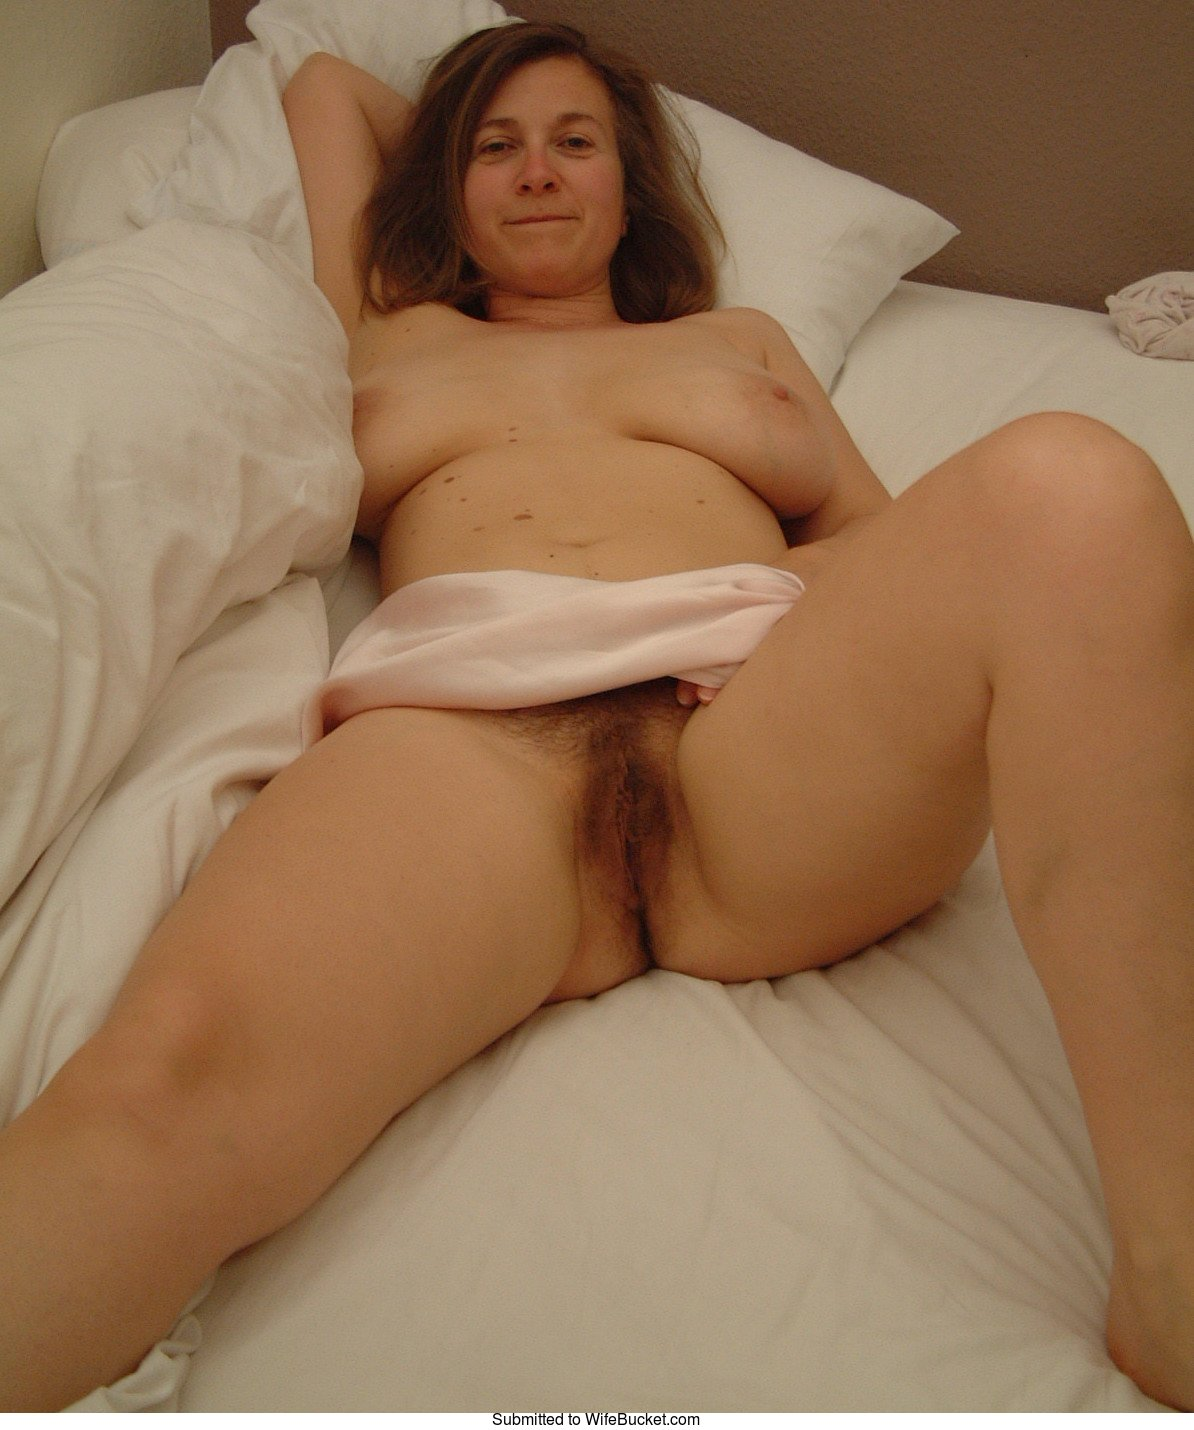 think, gorgeous shemale in pink fingering asshole with you agree